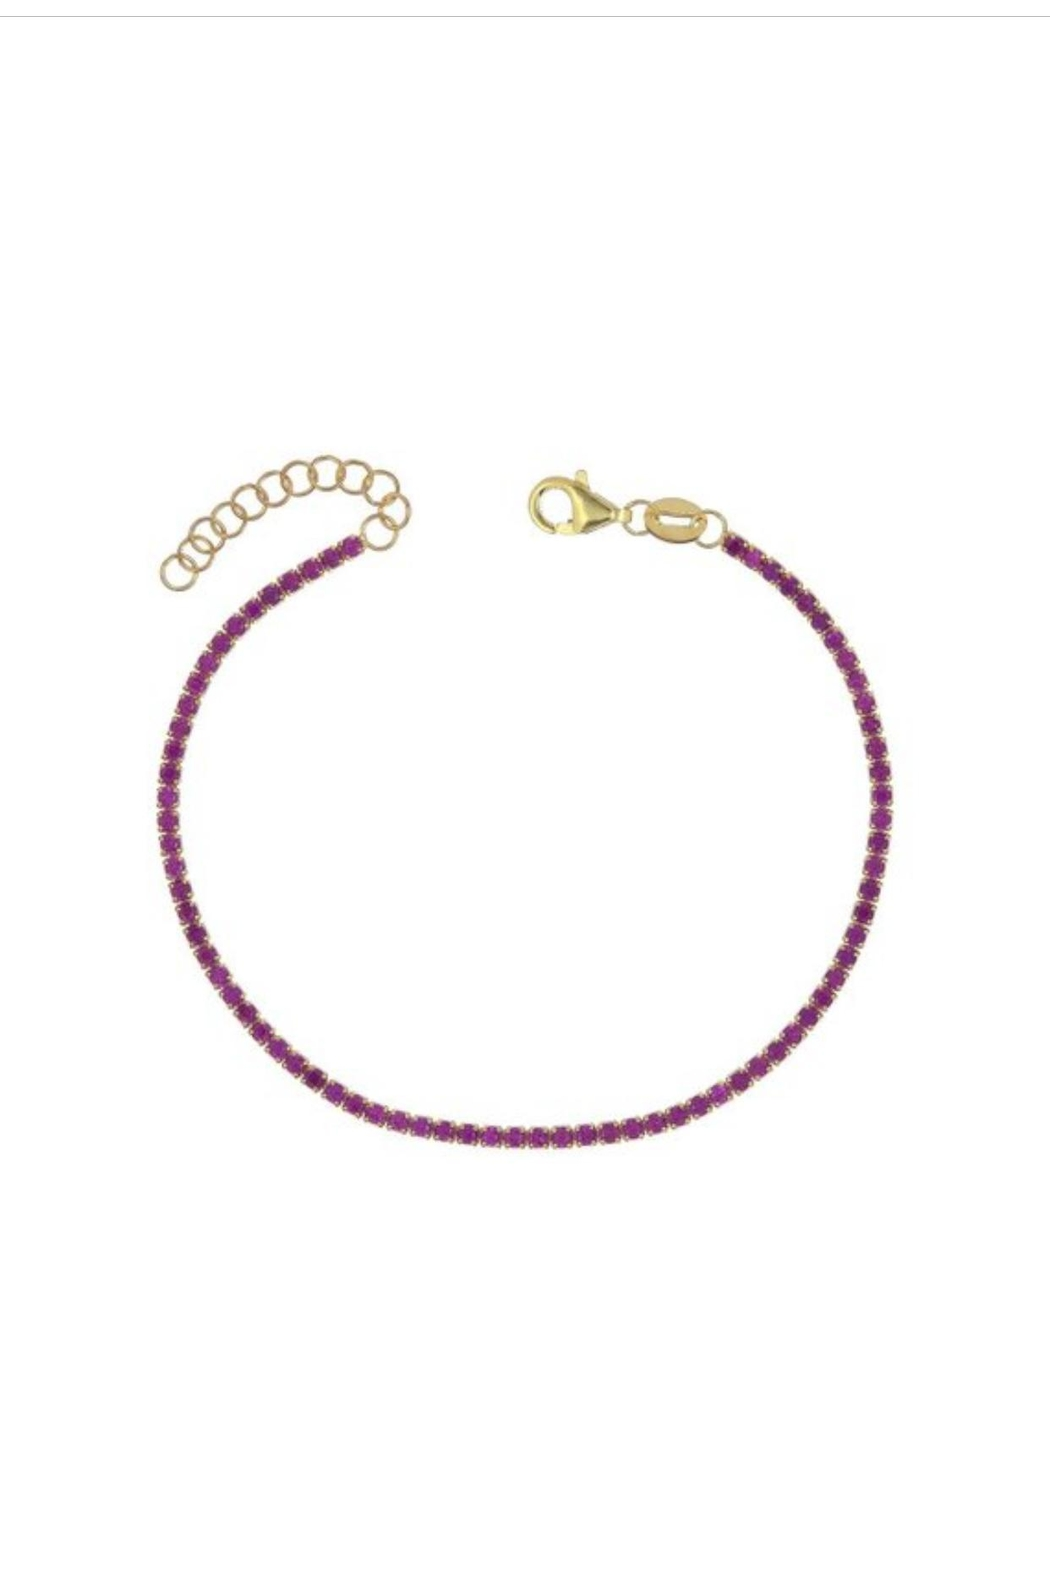 Adina S Jewels Pink Tennis Bracelet Front Cropped Image